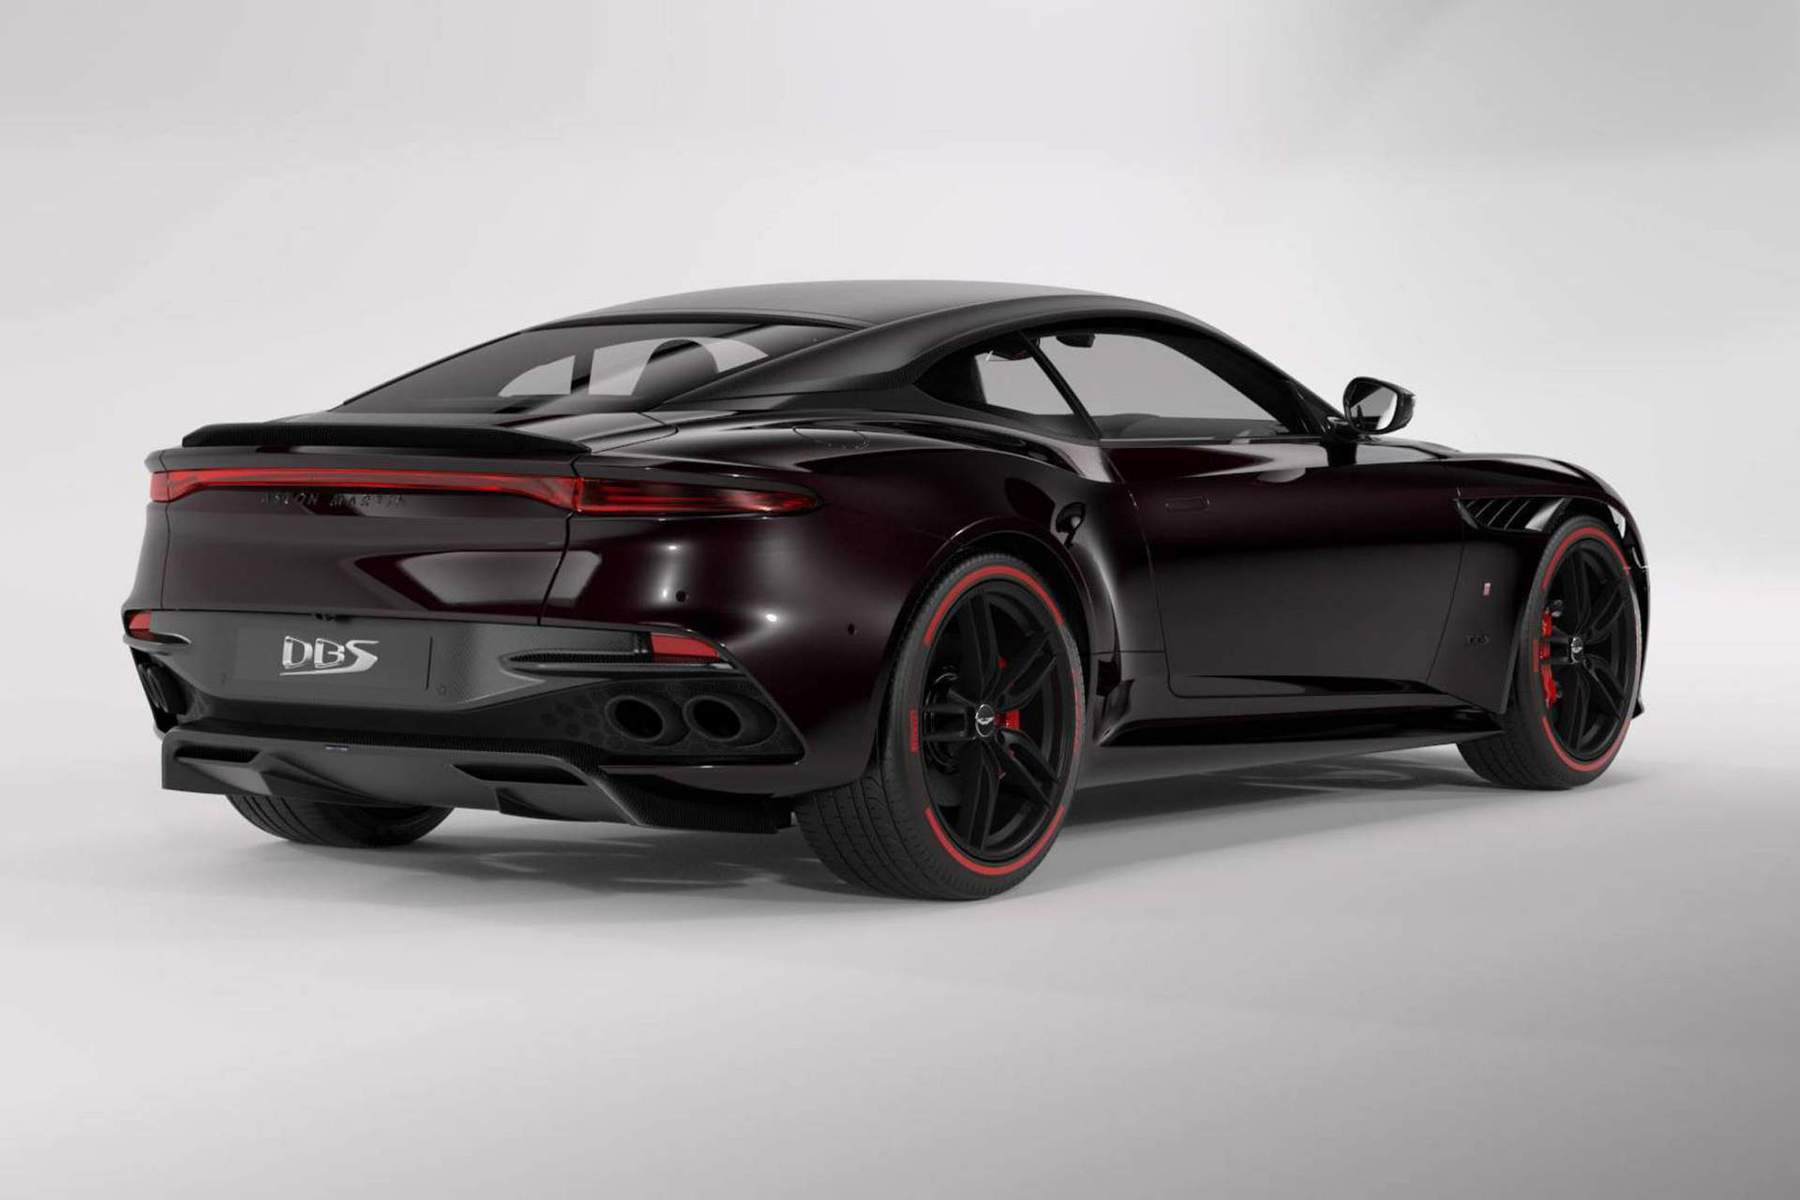 Aston Martin Tag Heuer Limited Edition DBS Superleggera